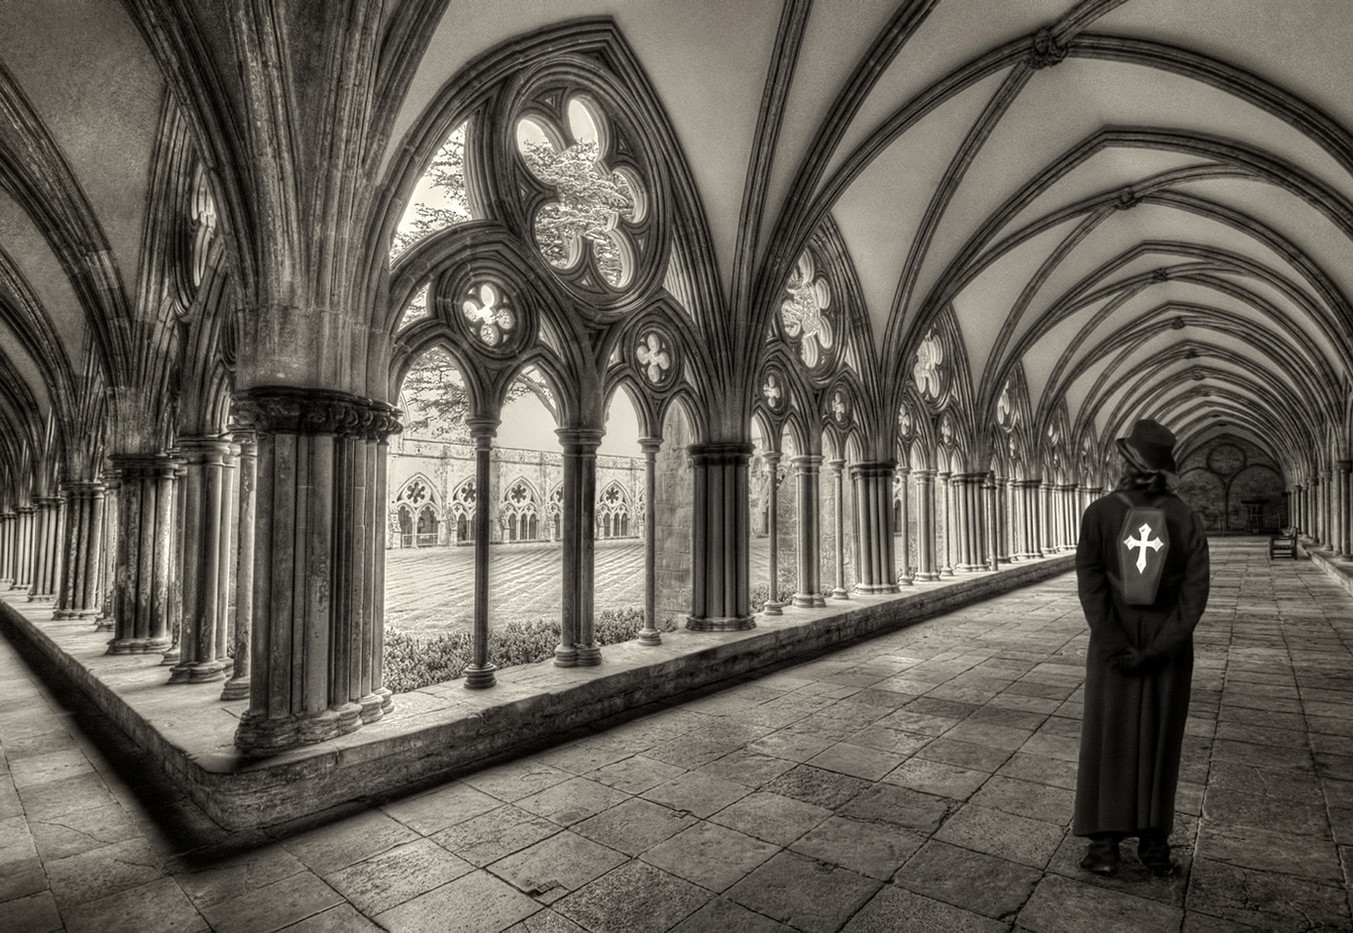 20 GOTH IN THE CLOISTERS by Pam Sherren